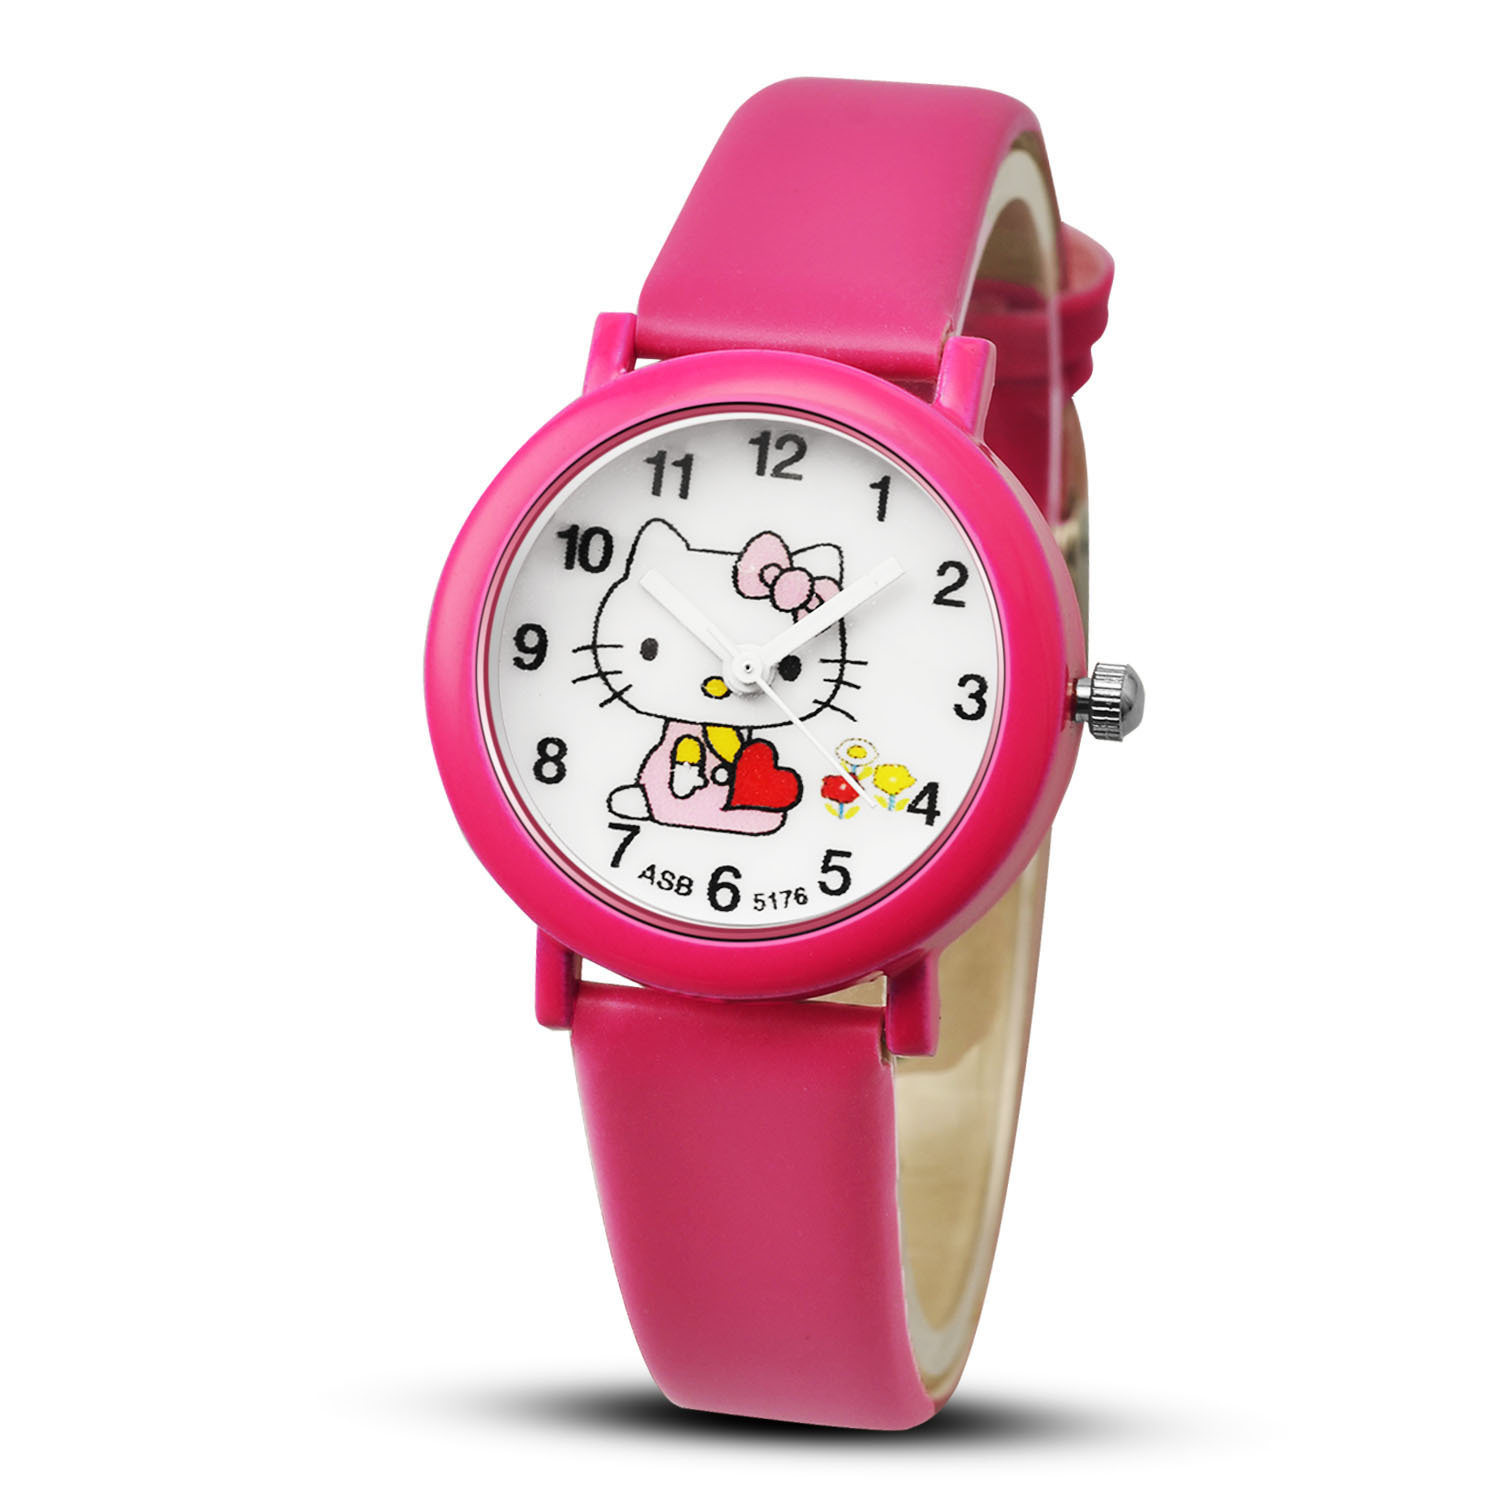 Hello Kitty Watch Kids Women Casual Leather Quartz Dress Wrist Watches Gifts For Girls Colorful Children's Cartoon Watches Clock